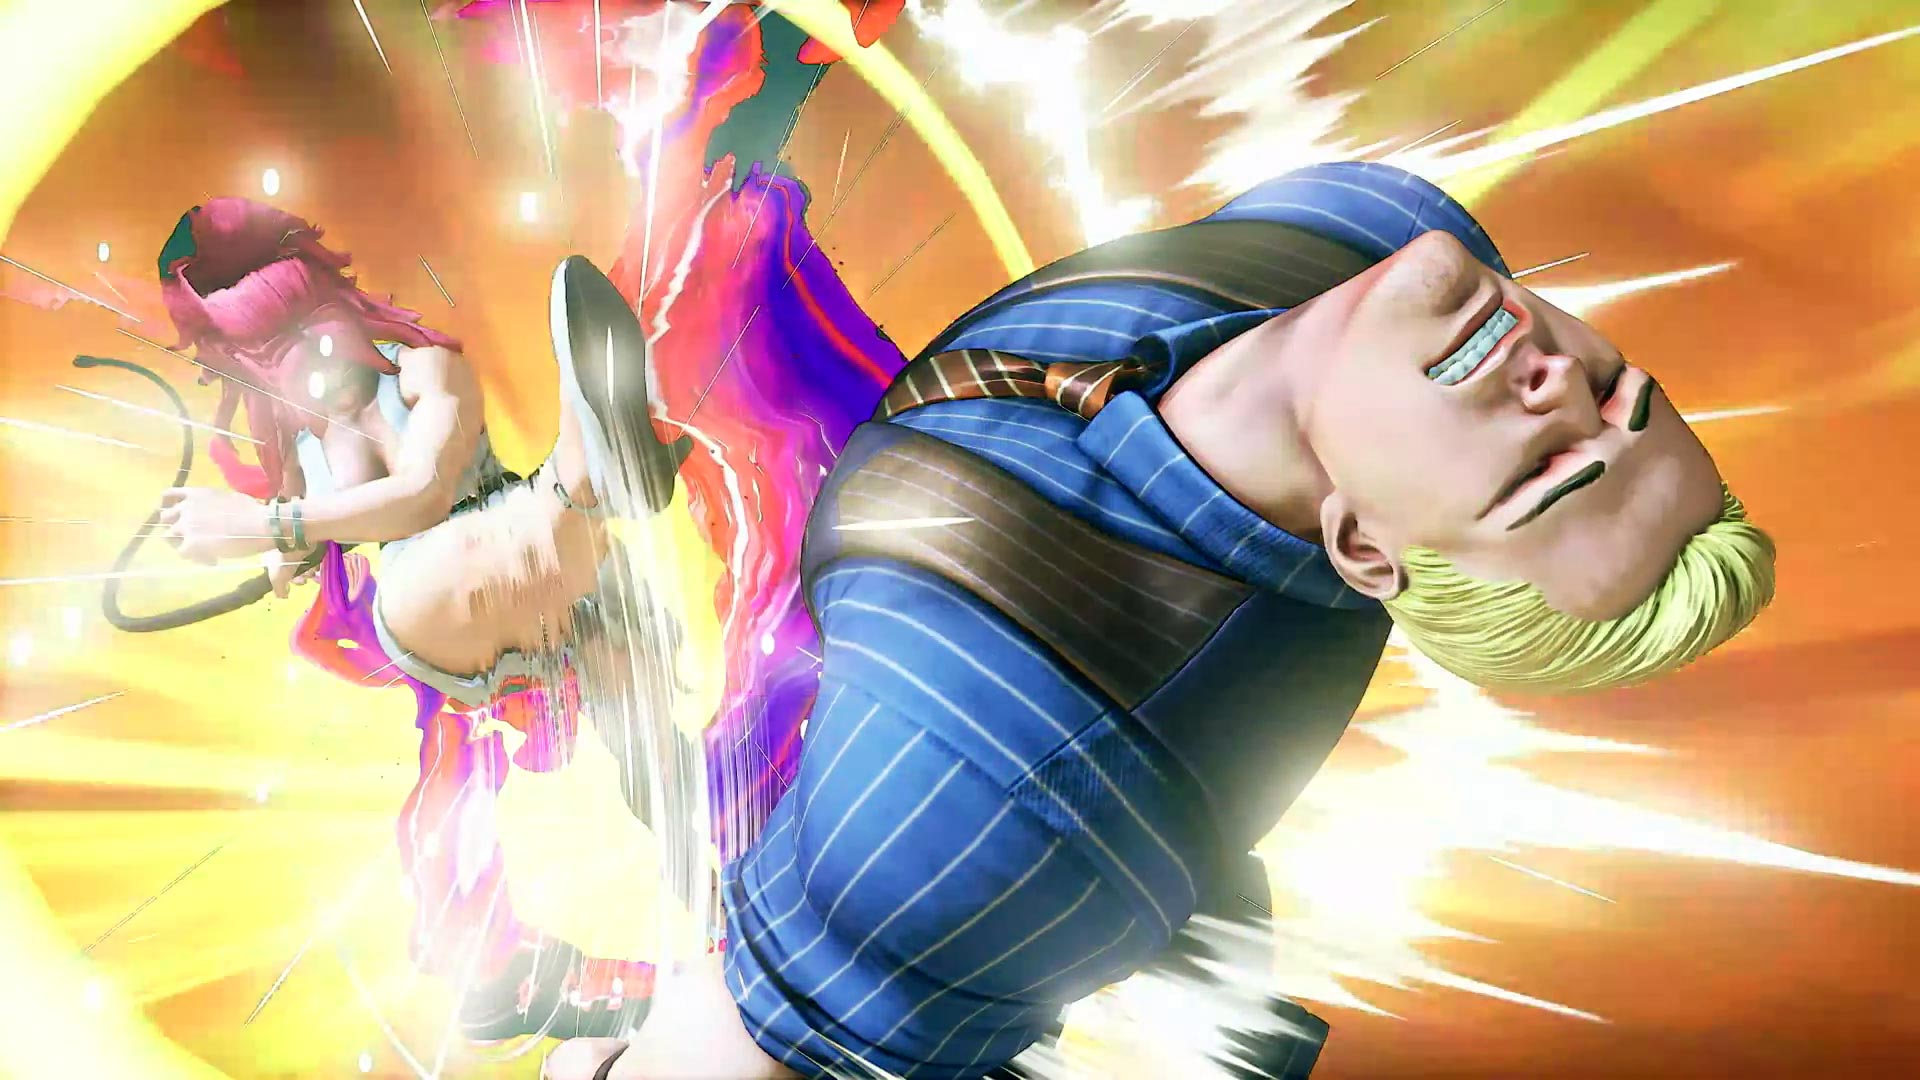 Street Fighter 5 leaked gallery of E. Honda, Lucia and Poison 34 out of 35 image gallery